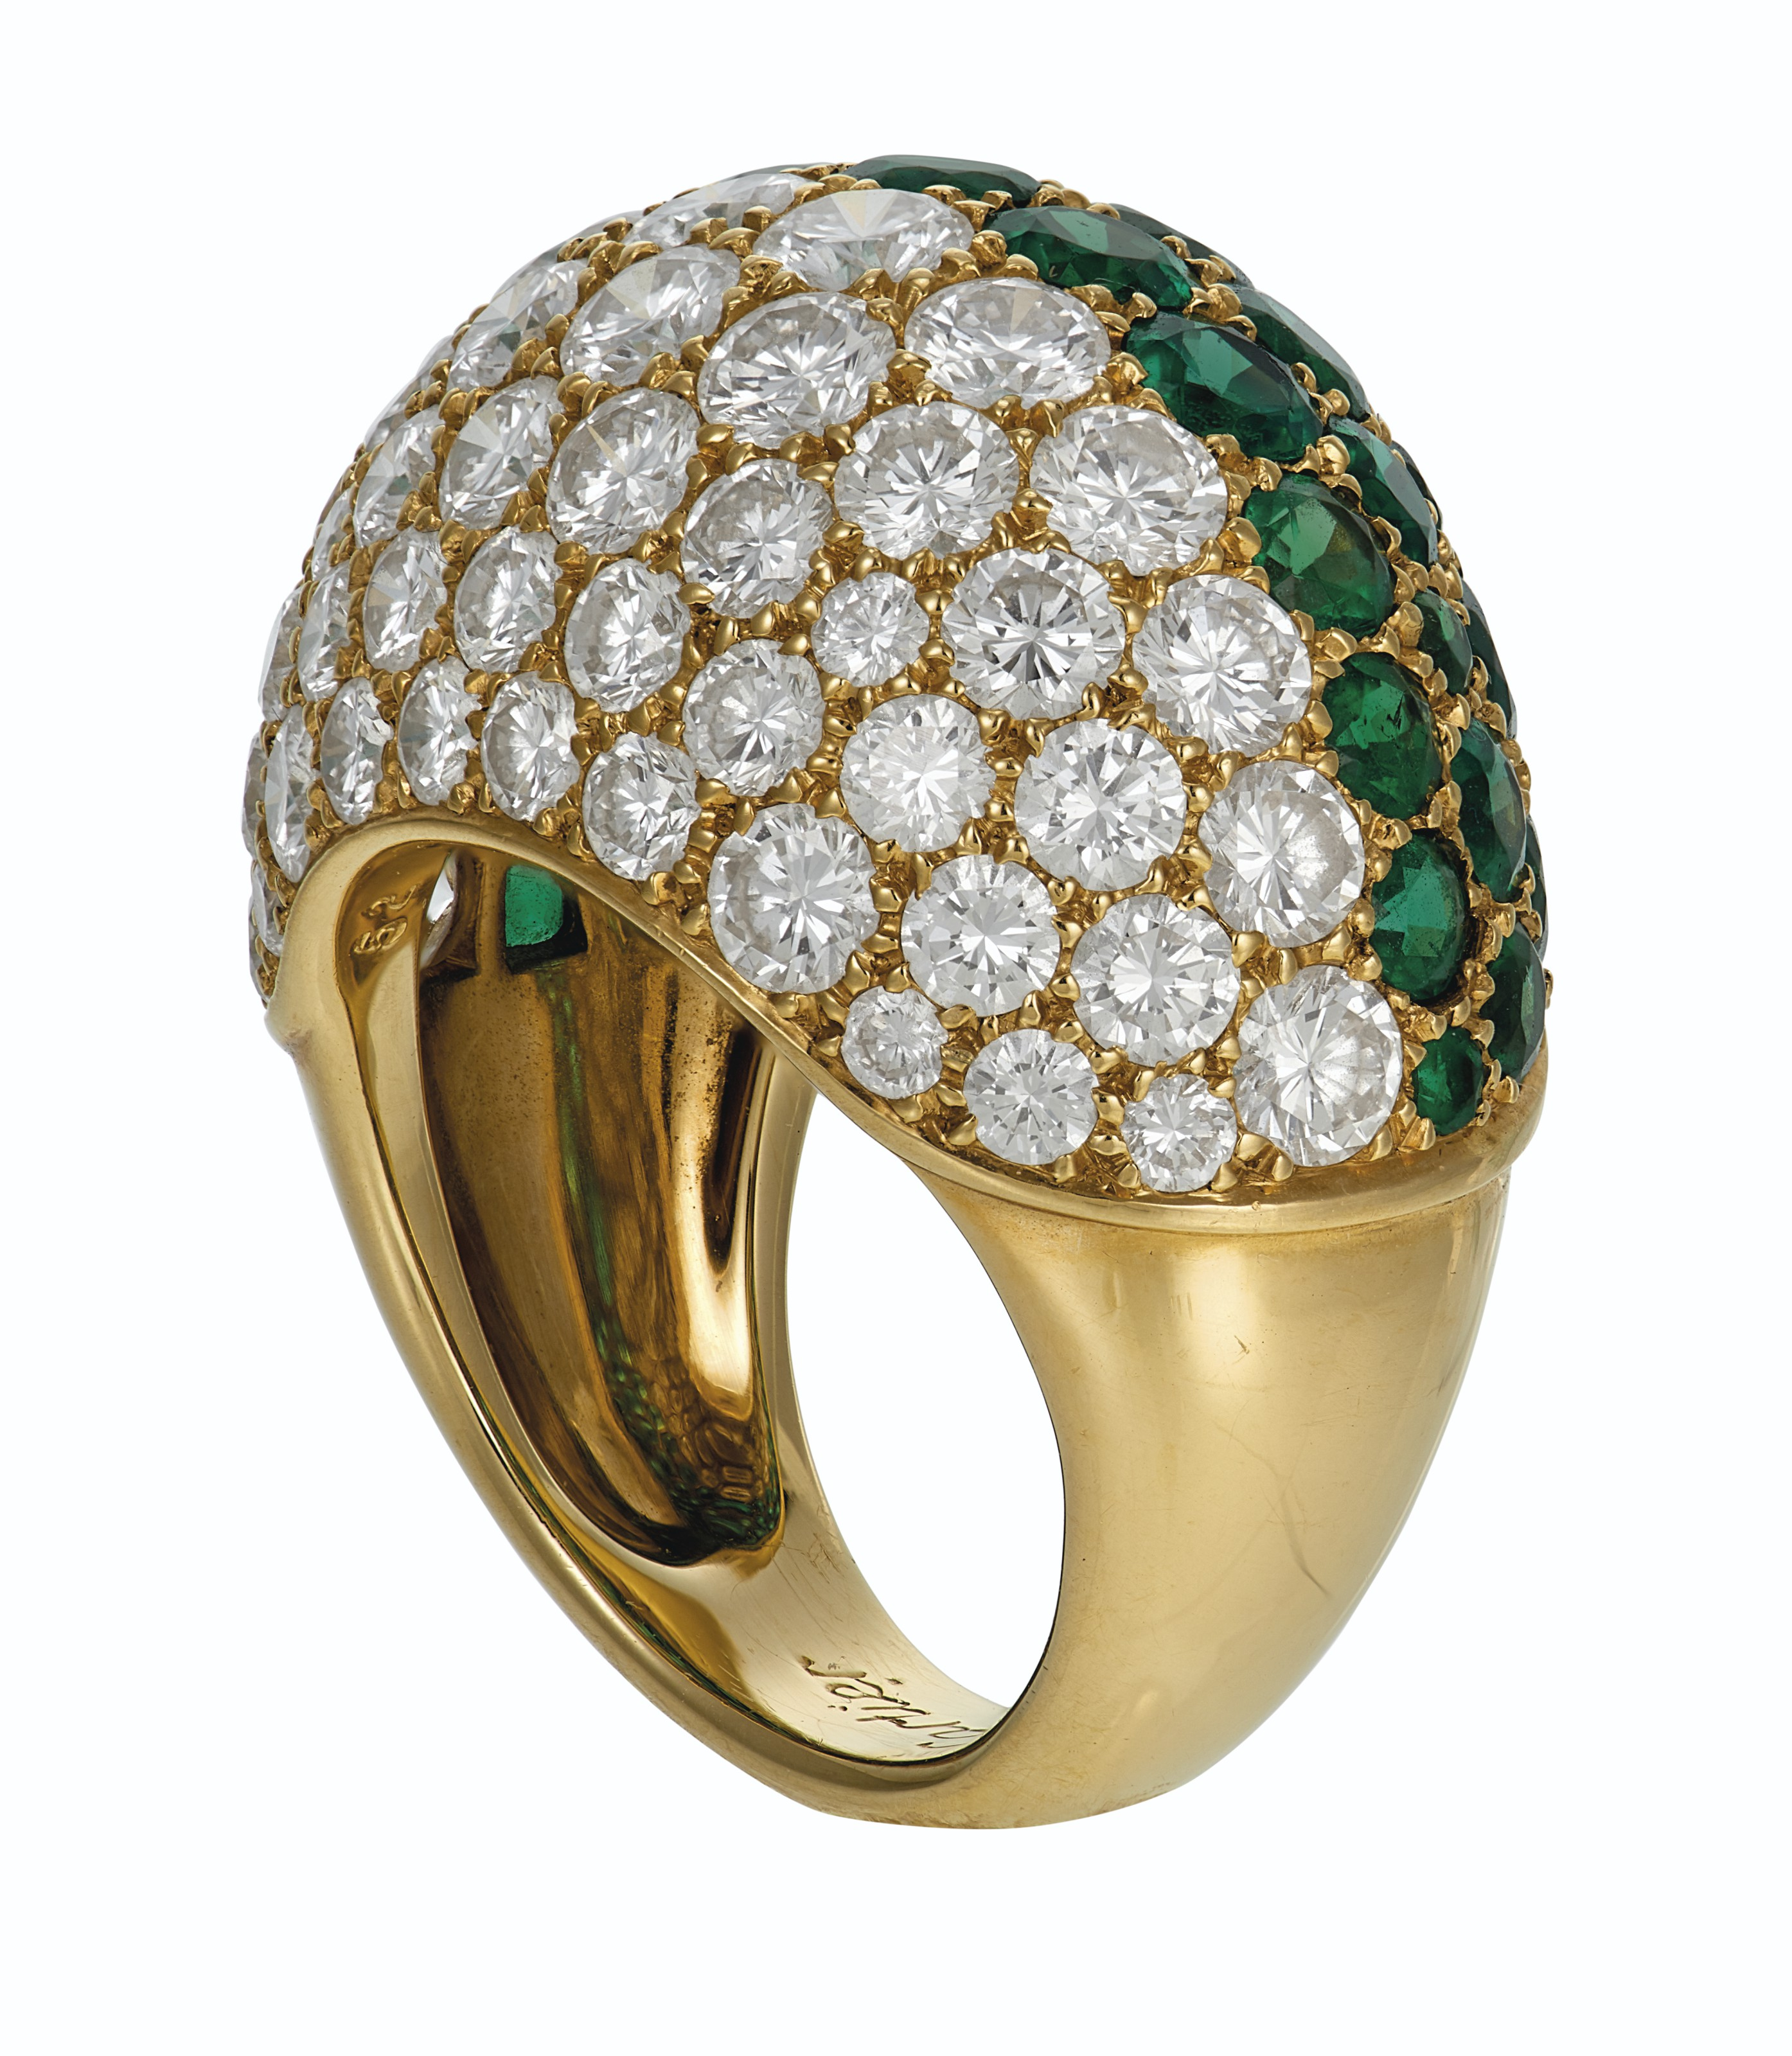 EMERALD AND DIAMOND 'BOULE' RING, CARTIER